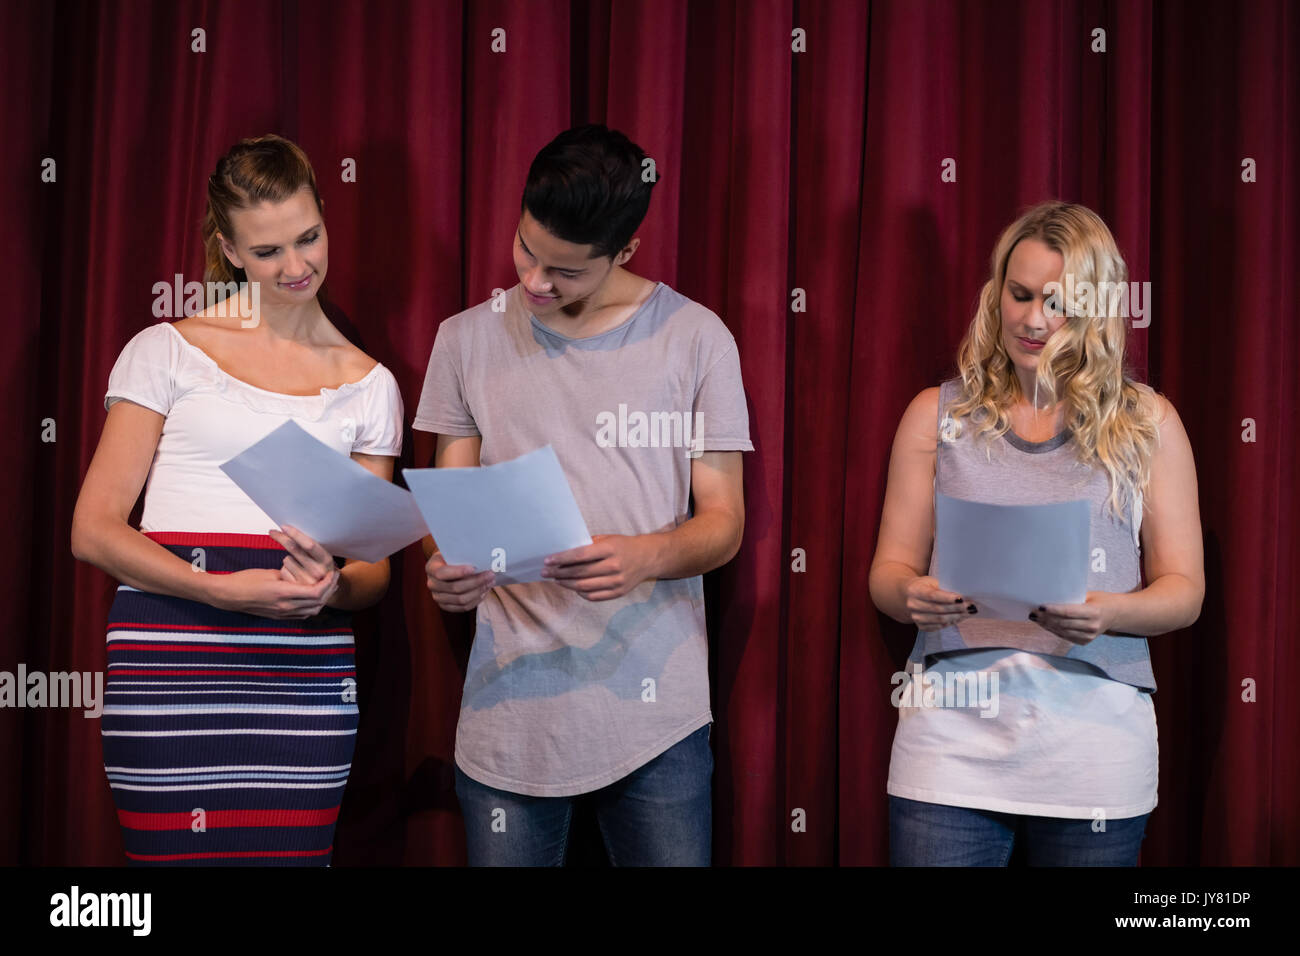 Actors reading their scripts on stage in theatre - Stock Image